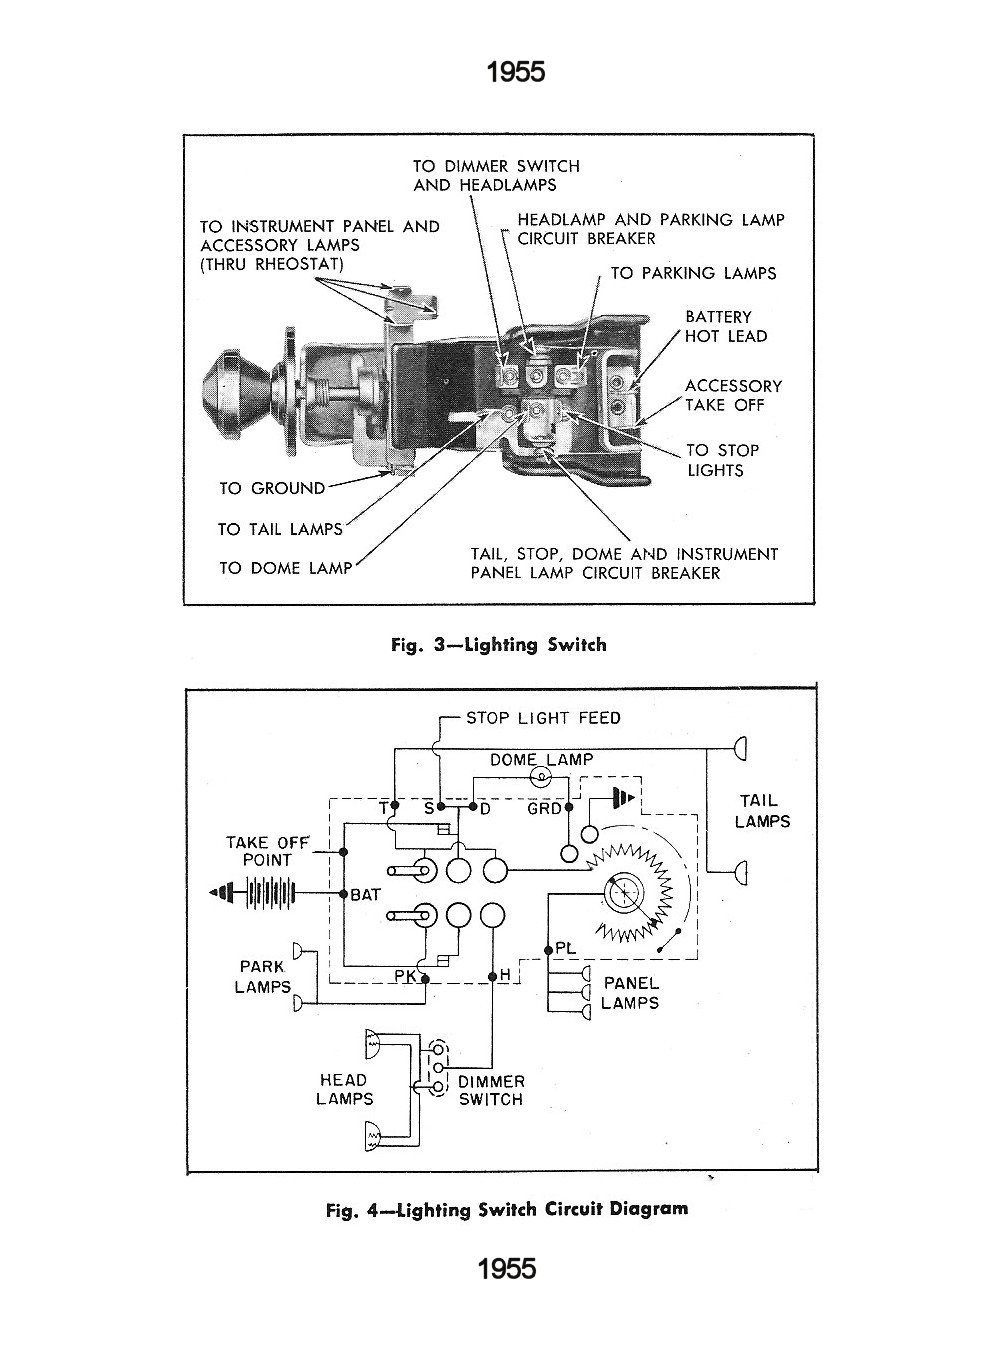 55csm1204a chevy wiring diagrams 66 Chevy Headlight Switch Wiring Diagram at reclaimingppi.co